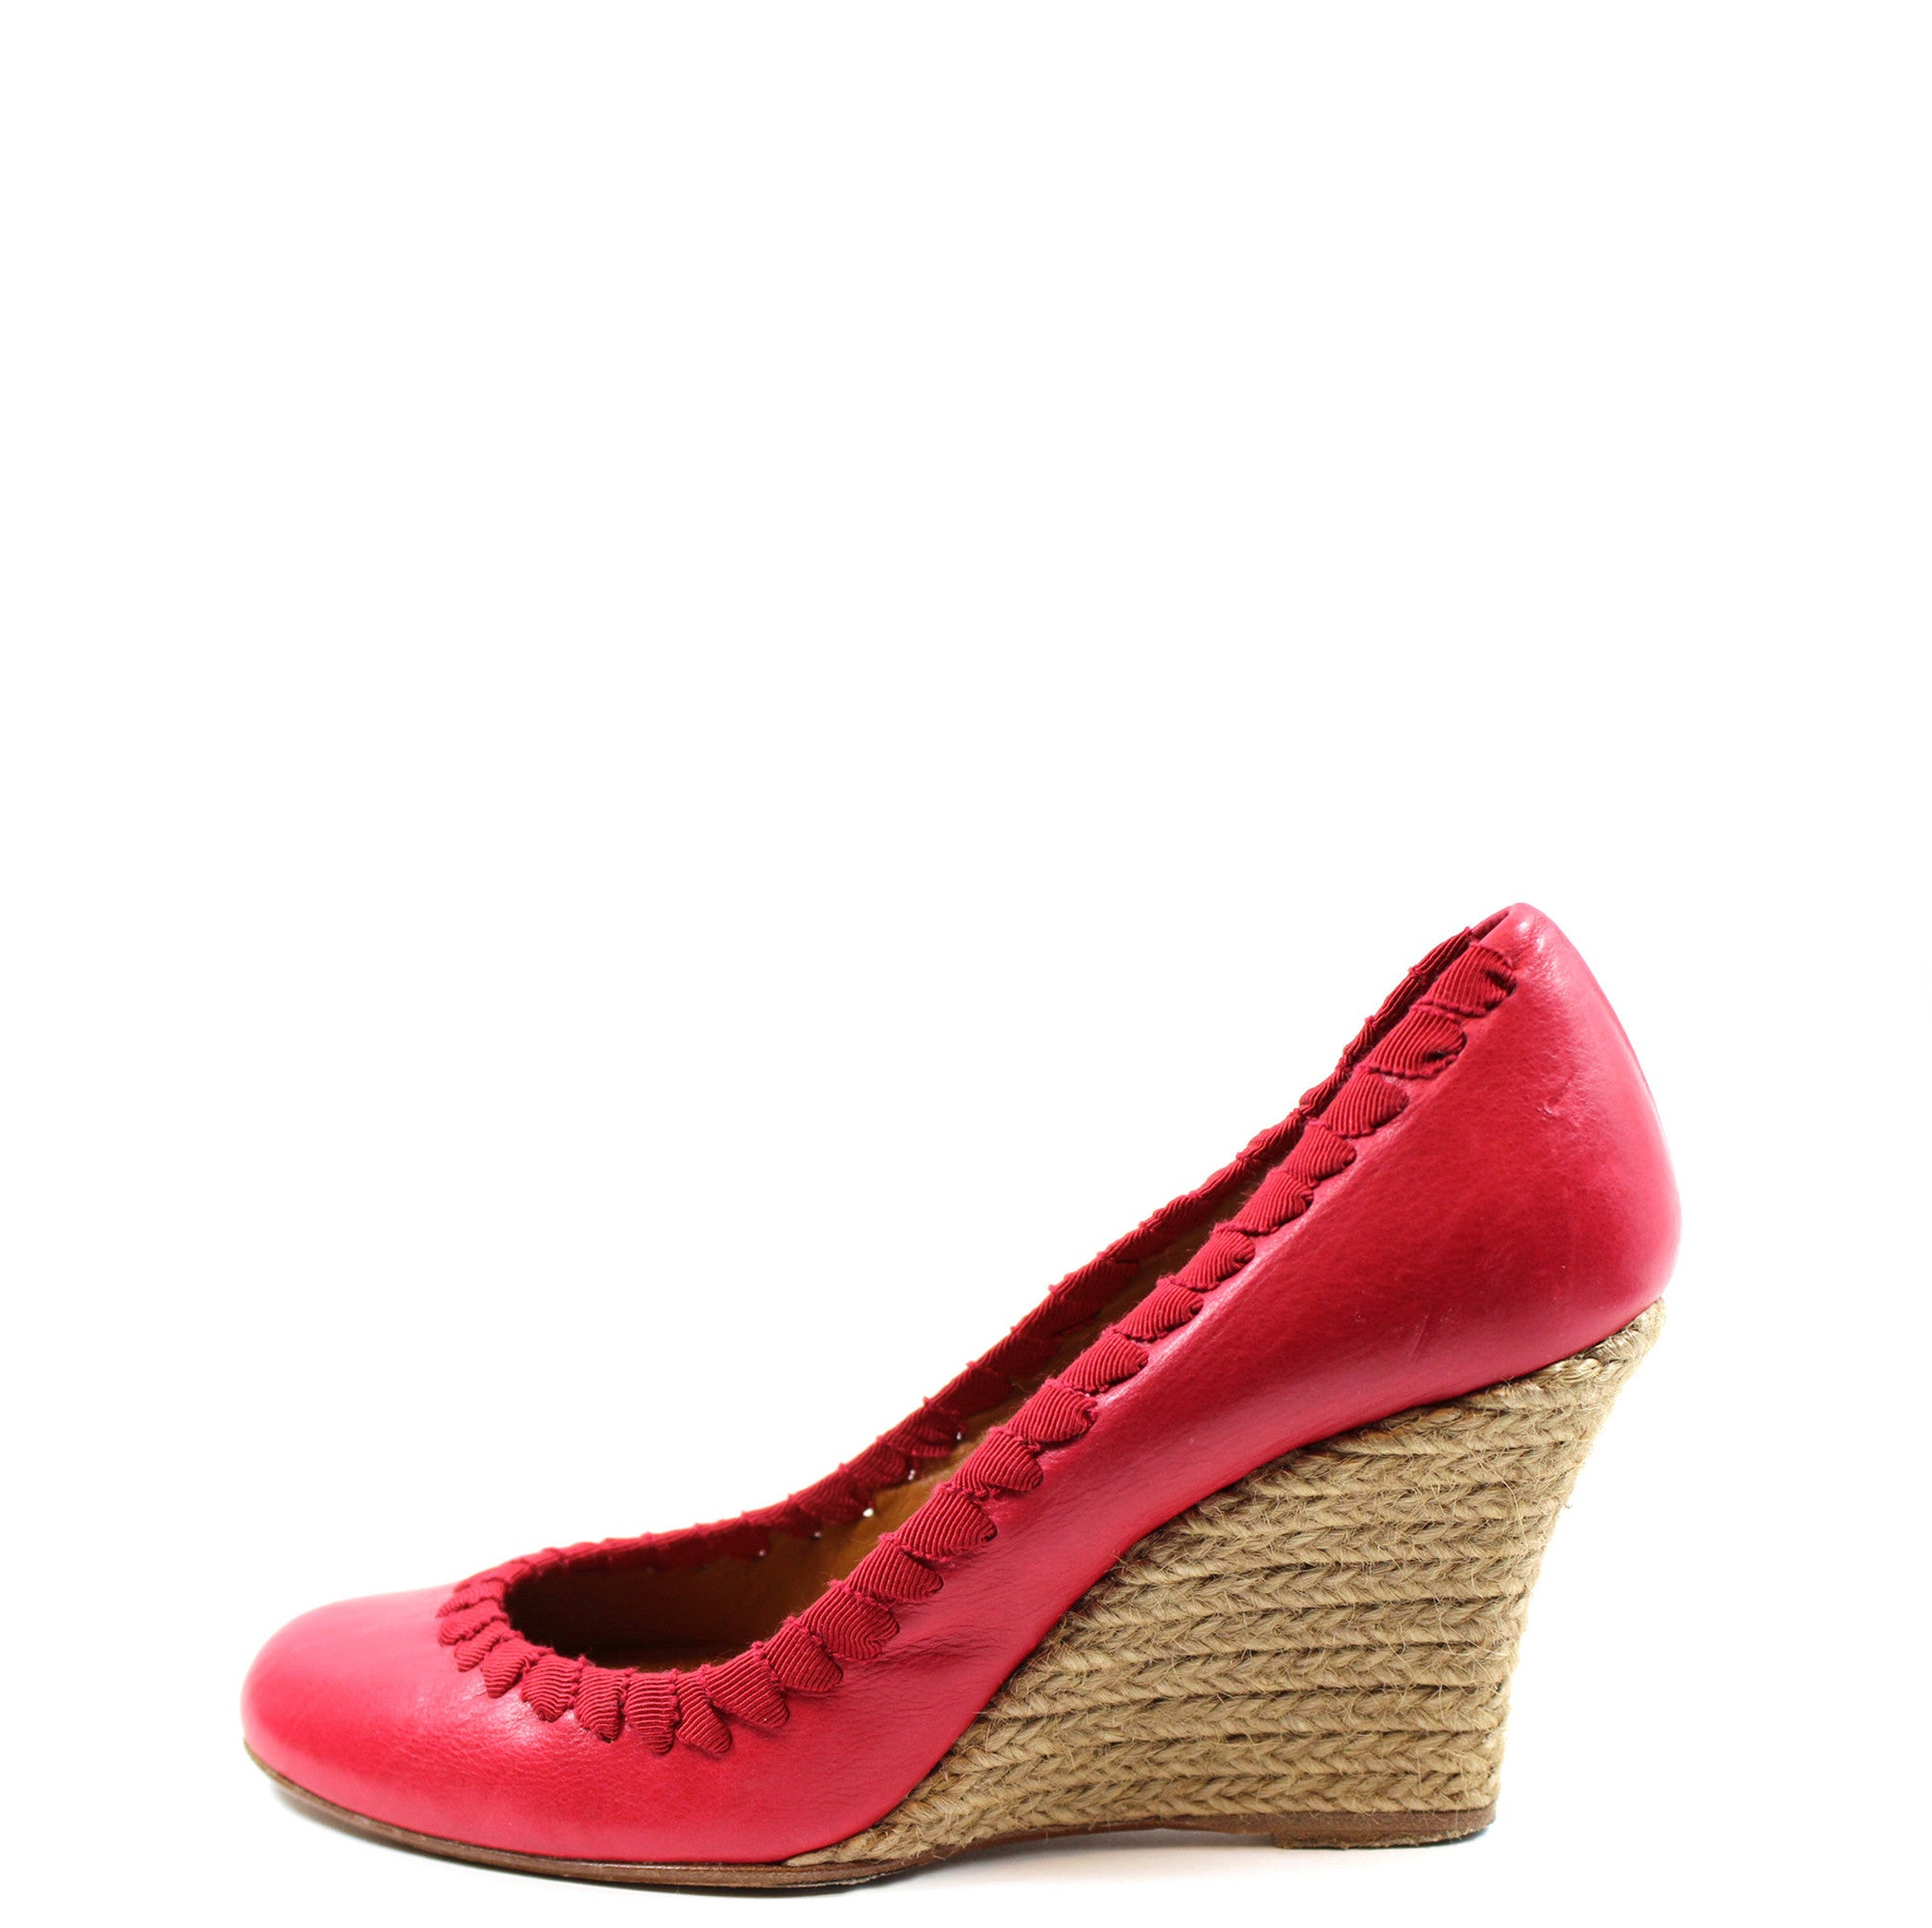 Lanvin Red Round Toe Wedges (Size 36)